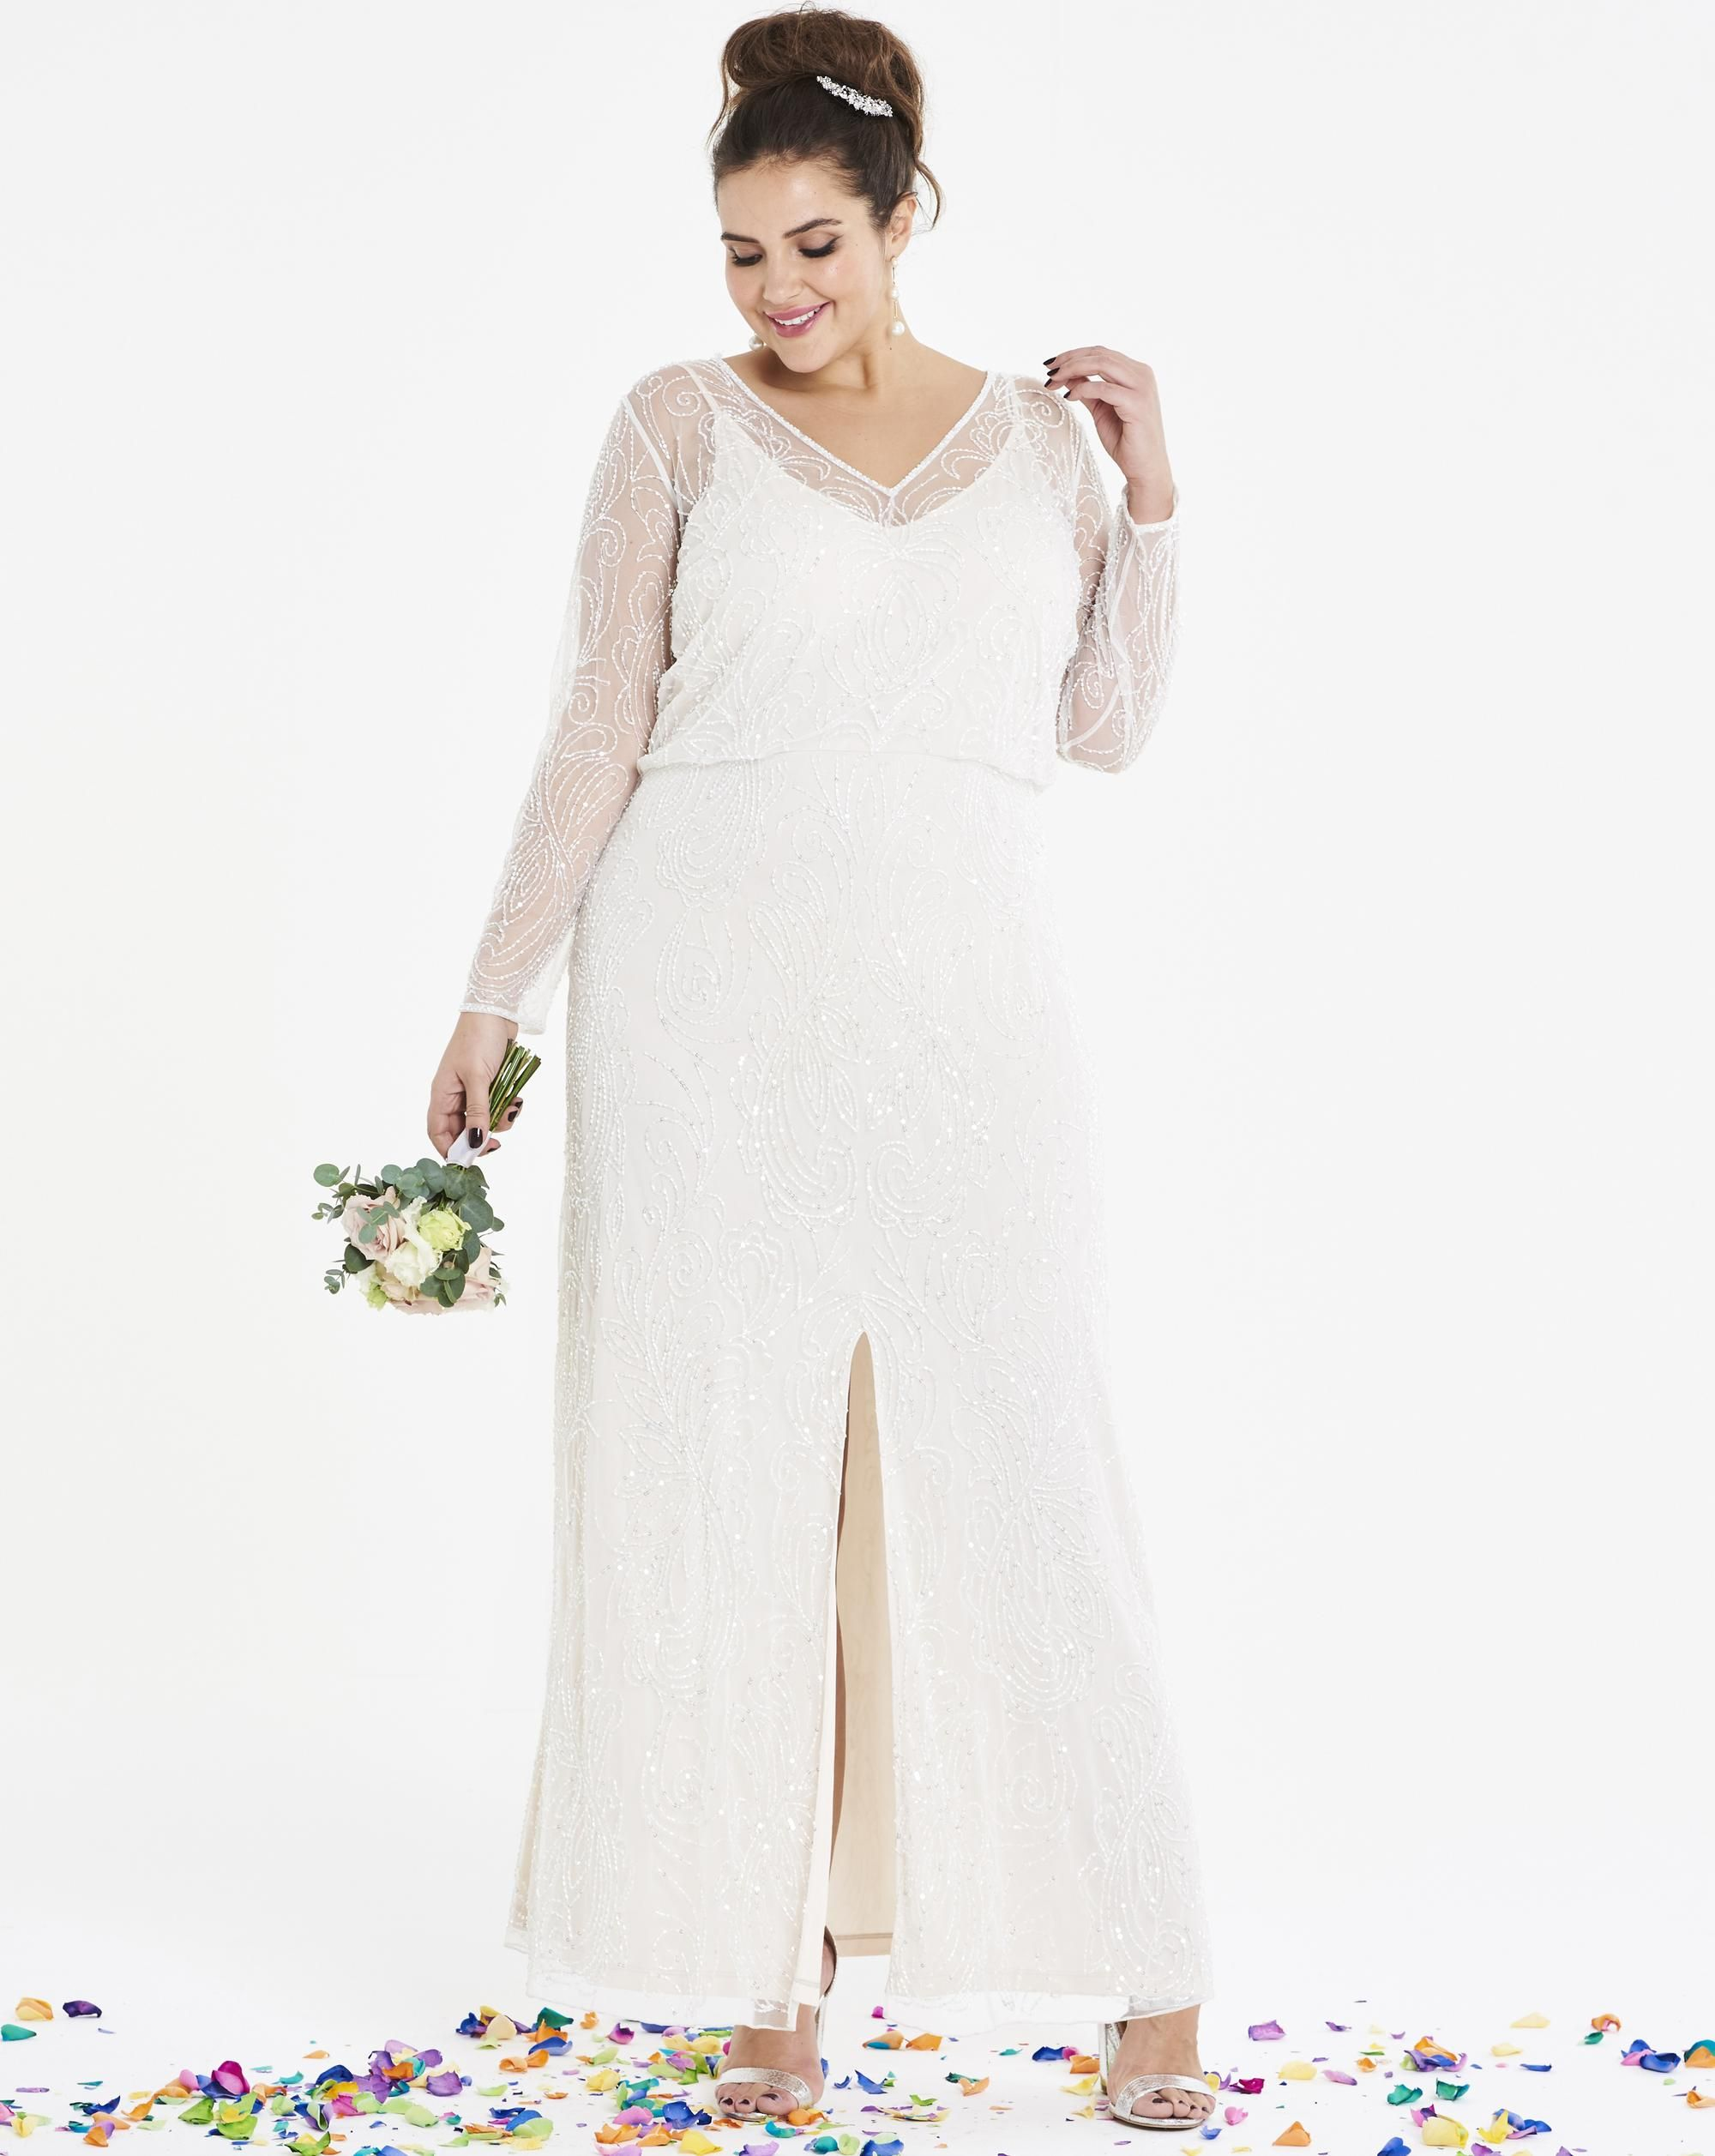 Plus Size Dresses For Wedding Summer 2018 | Beaded Bridal Maxi Dress ...